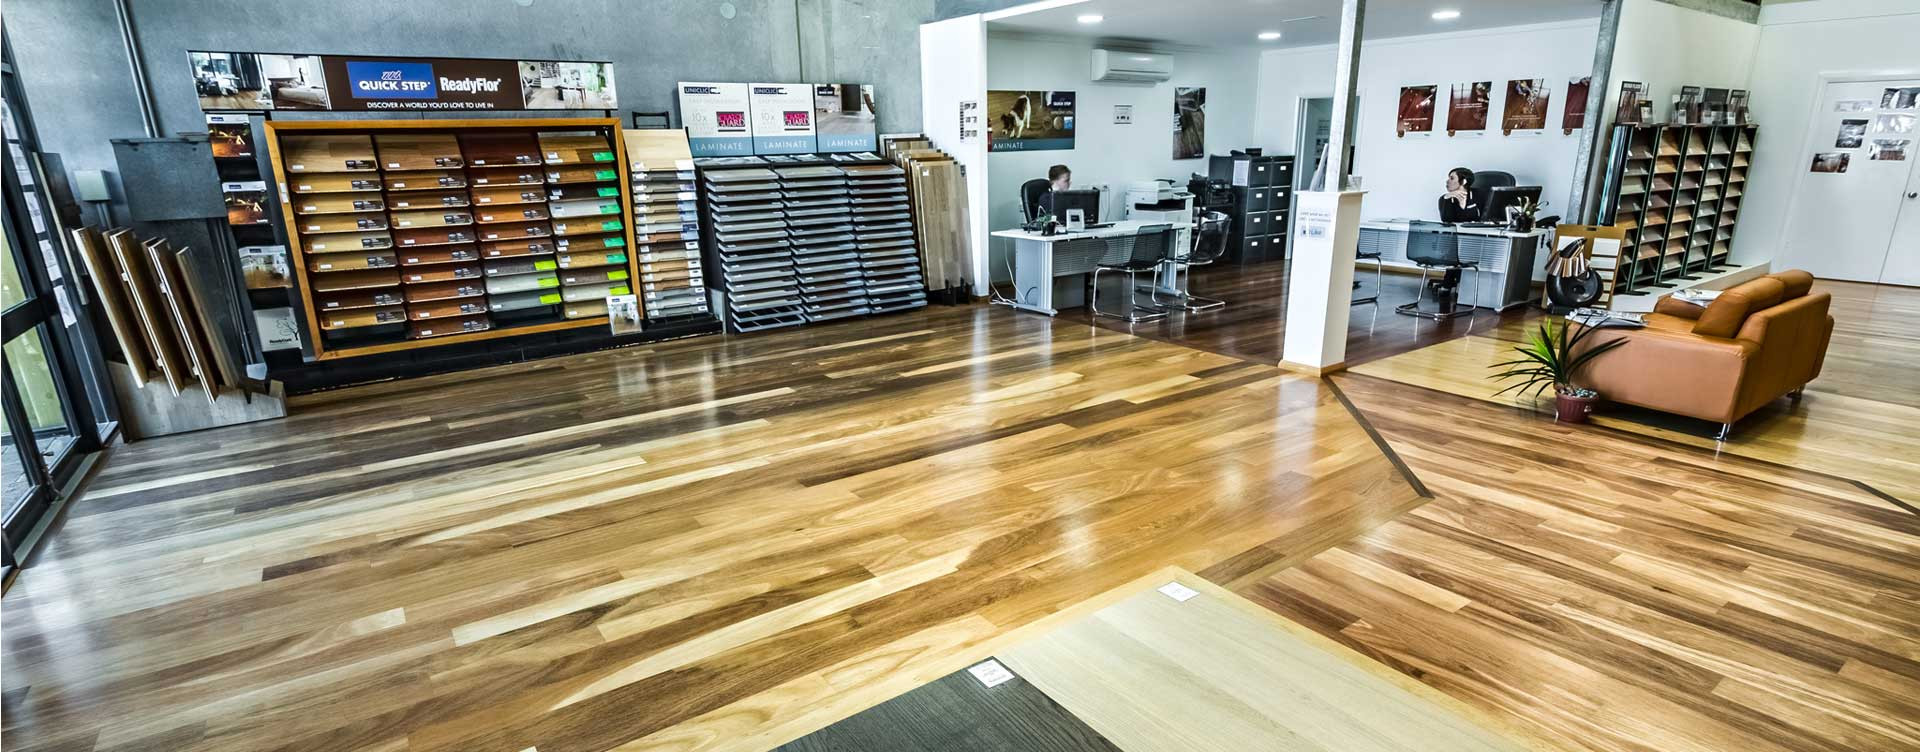 laminate hardwood flooring cost per square foot of timber flooring perth coastal flooring wa quality wooden with regard to thats why they call us the home of fine wood floors